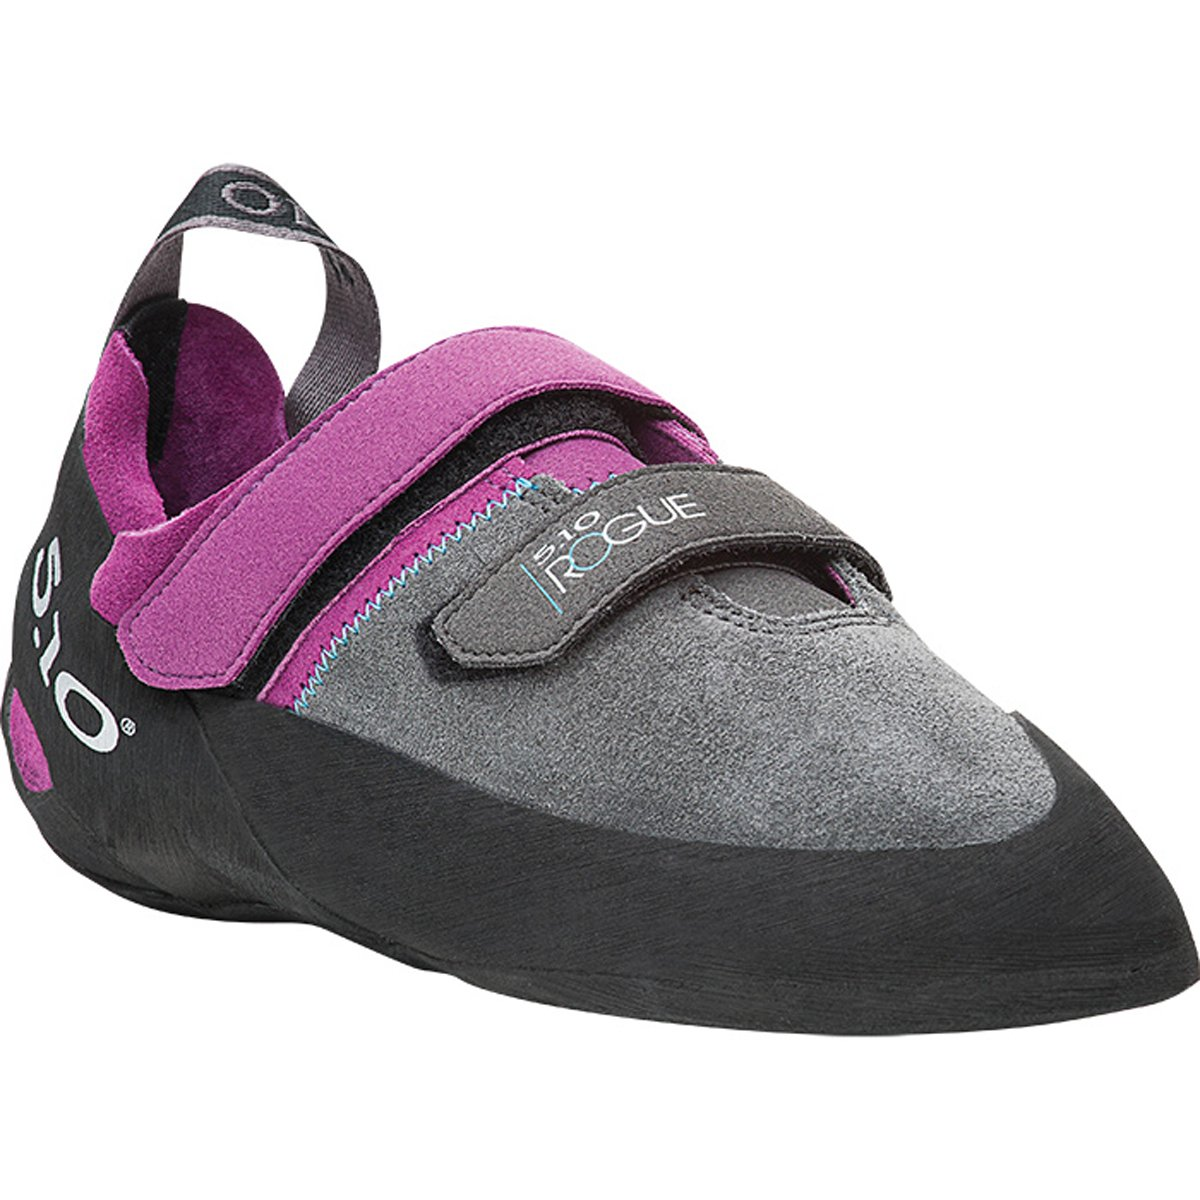 Five Climbing Ten Women's Rogue VCS Climbing Five Shoe B00Q8ZV18Q 9.5|Purple 0f2929